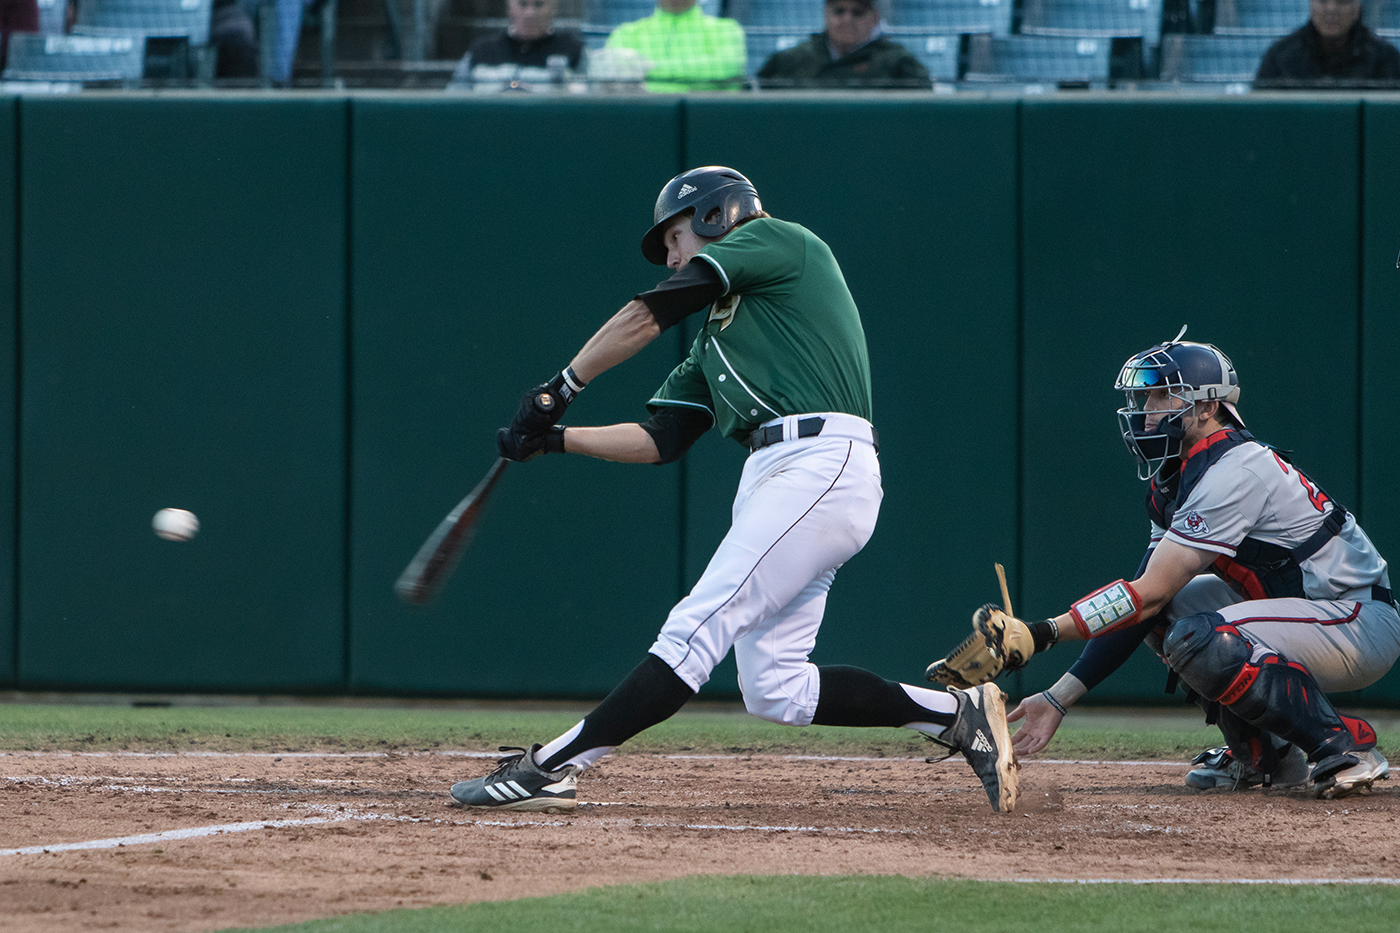 Cal Poly blown out by Fresno State in a 16-6 loss - Mustang News